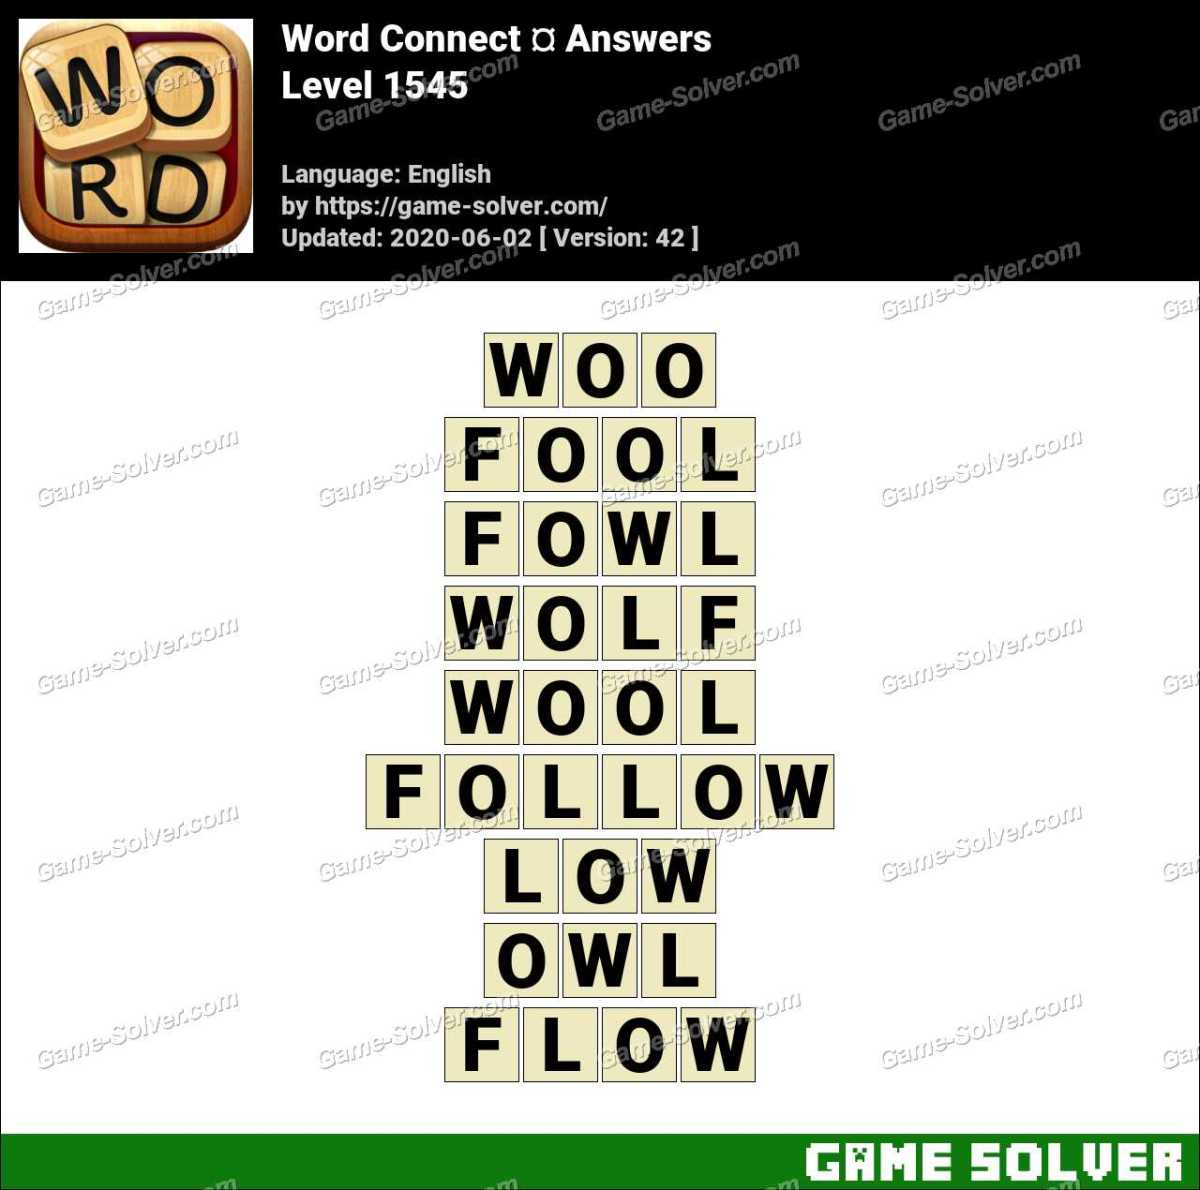 Word Connect Level 1545 Answers